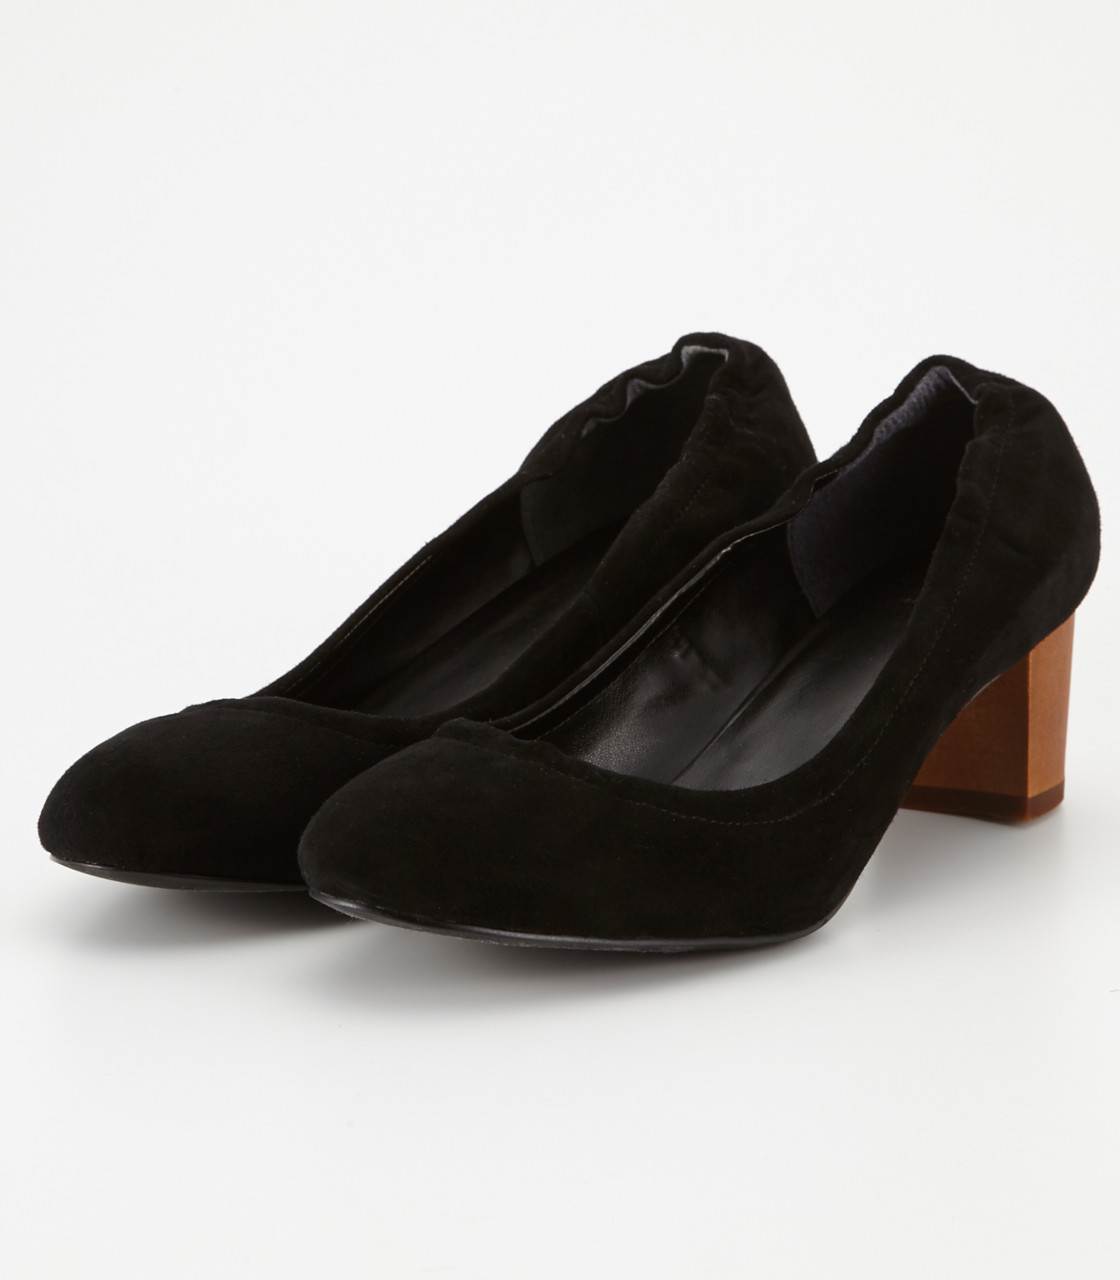 Suede round pumps